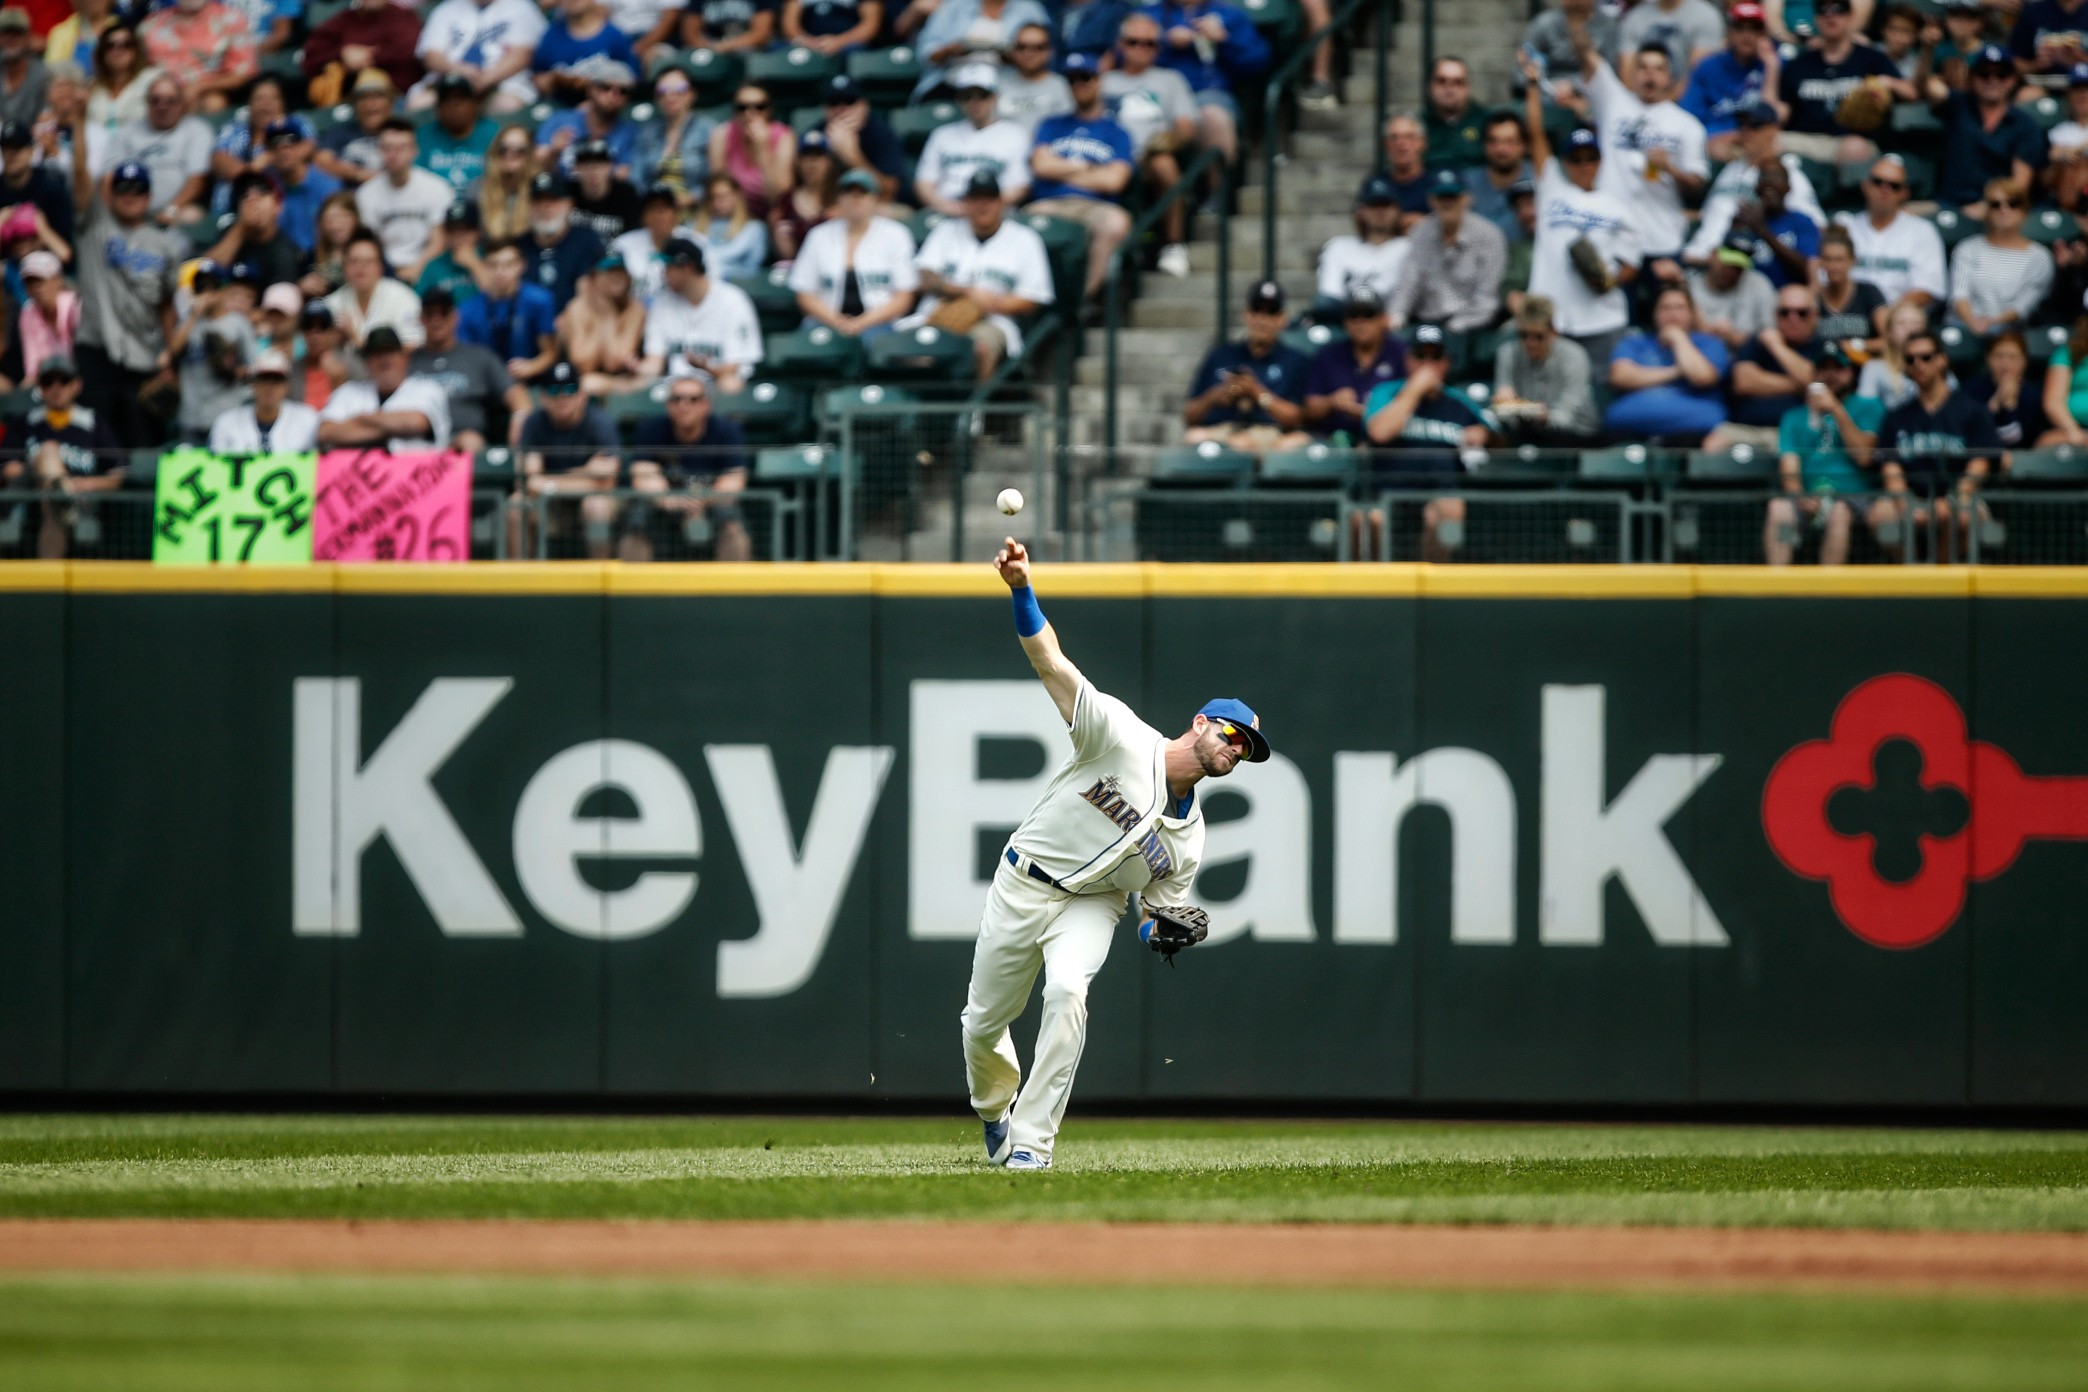 2018 in Review: Mitch Haniger - From the Corner of Edgar & Dave